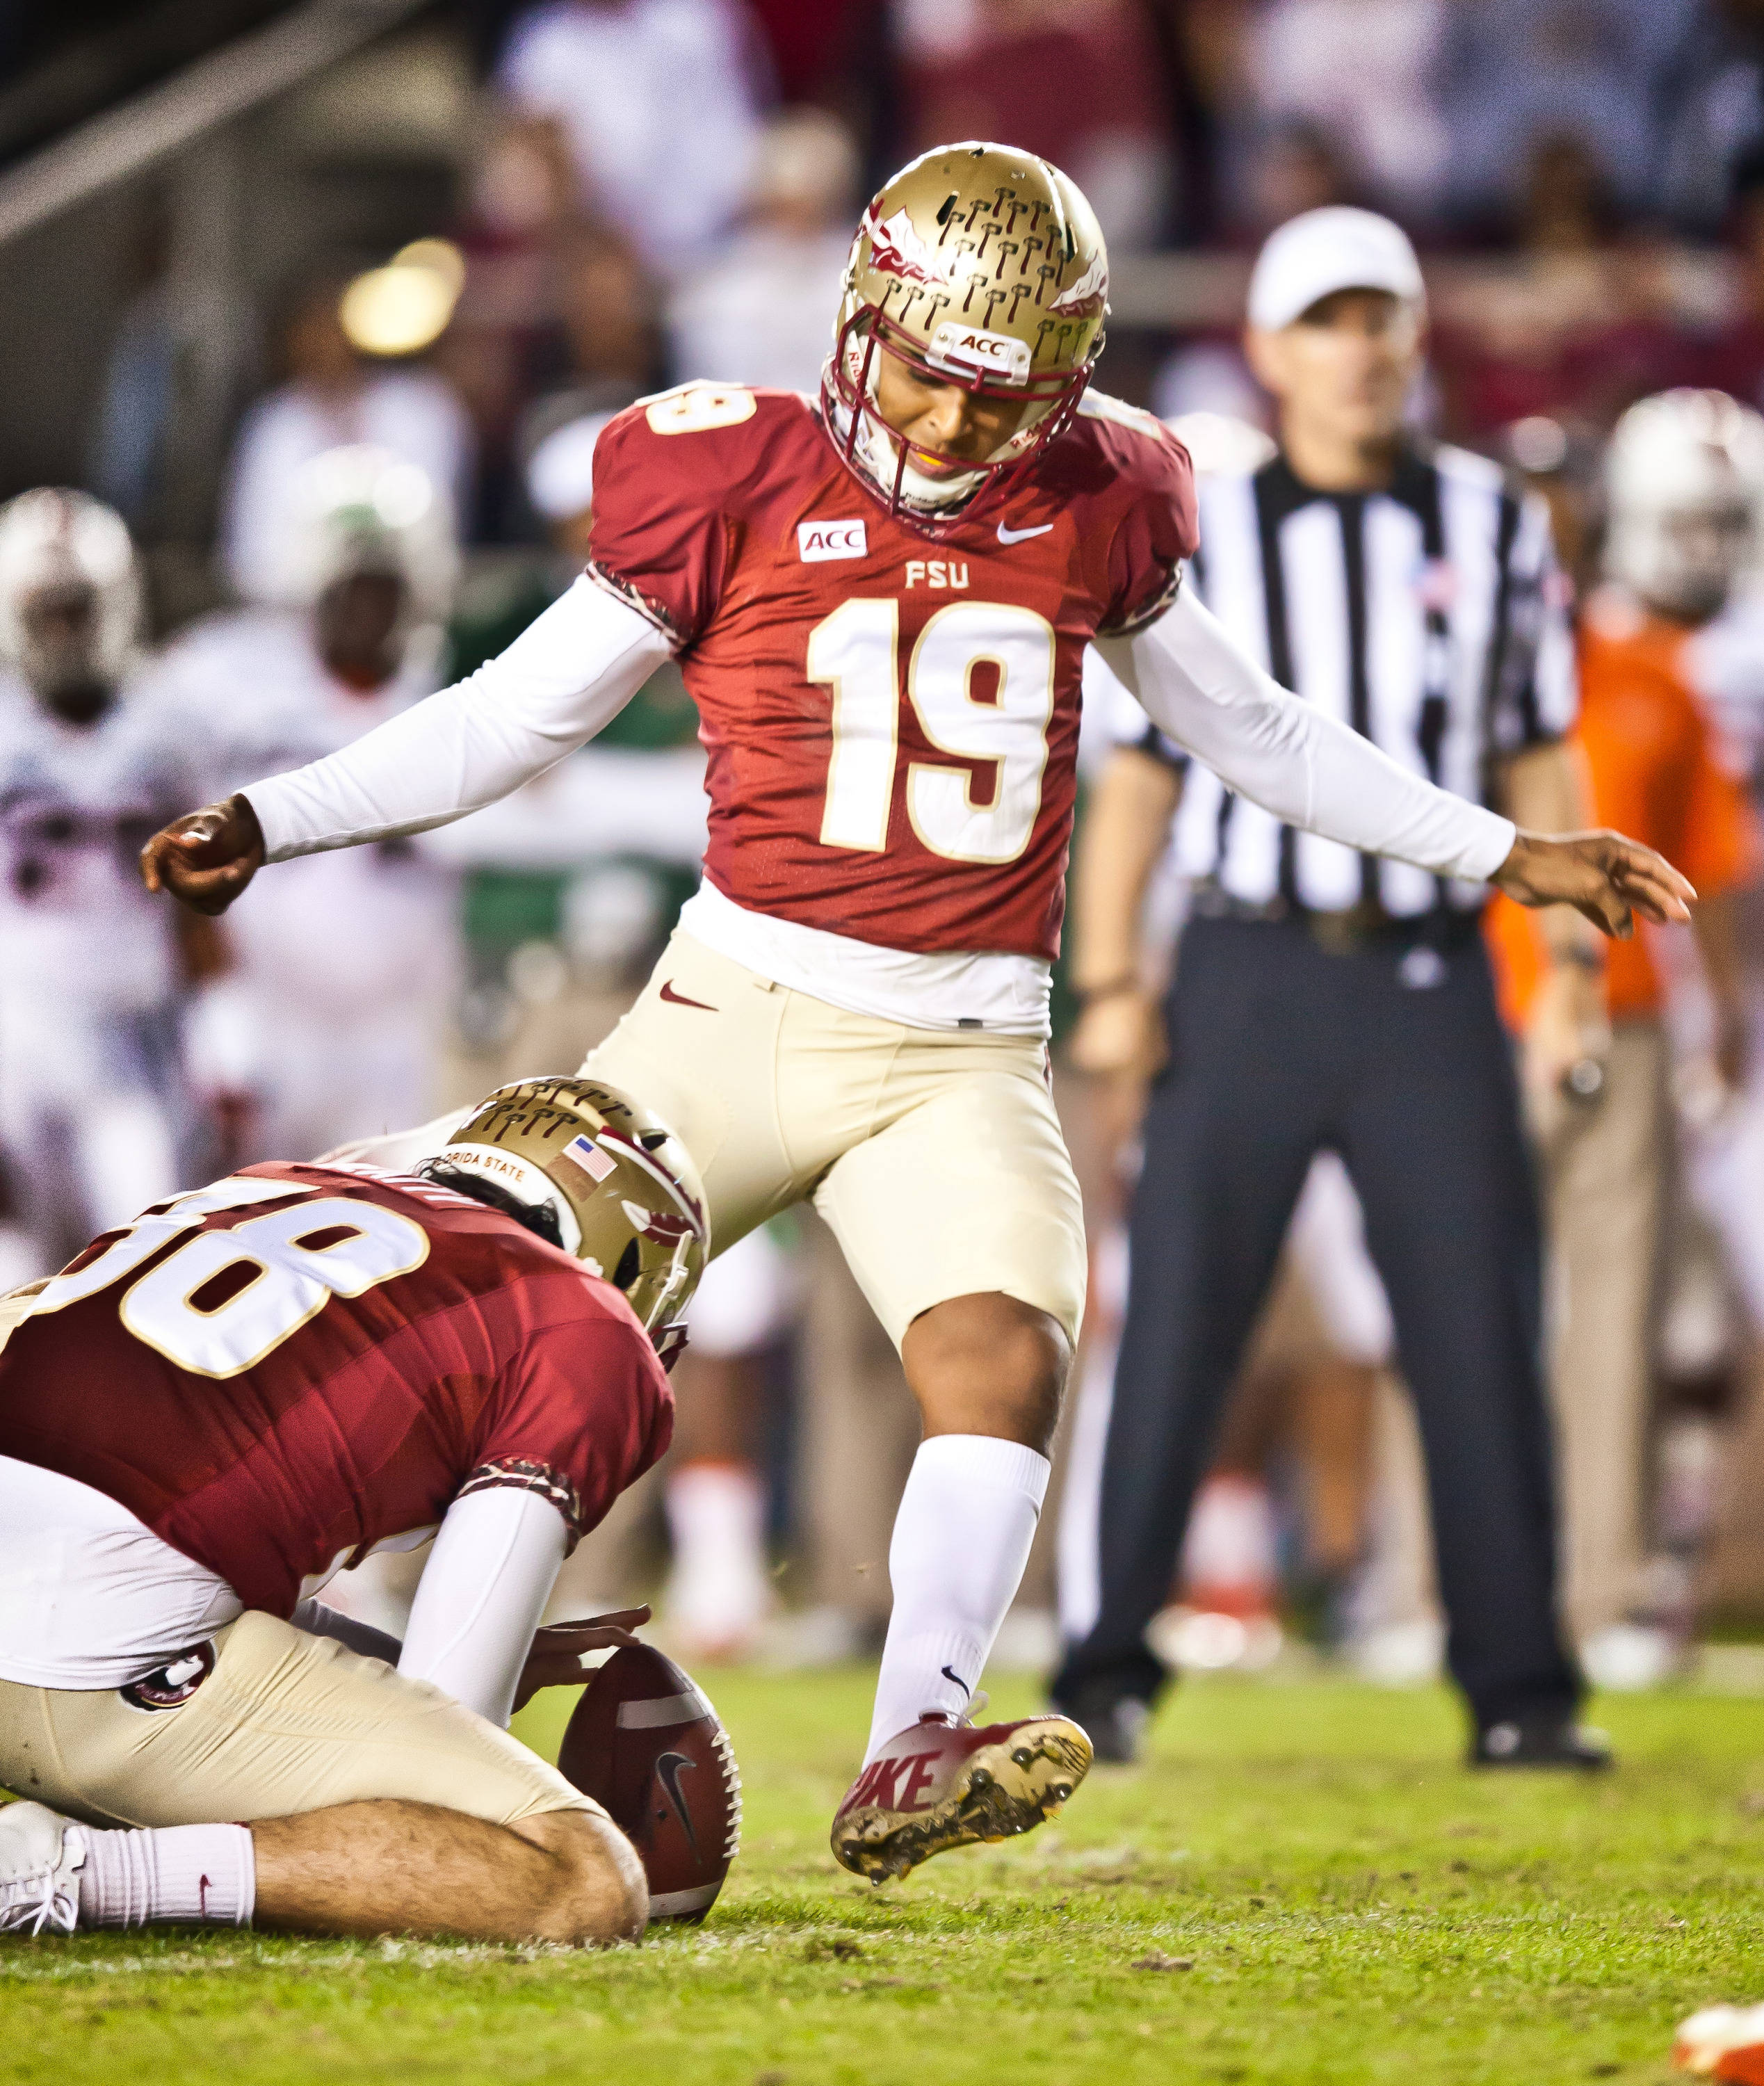 Roberto Aguayo (19) converts another field goal attempt.